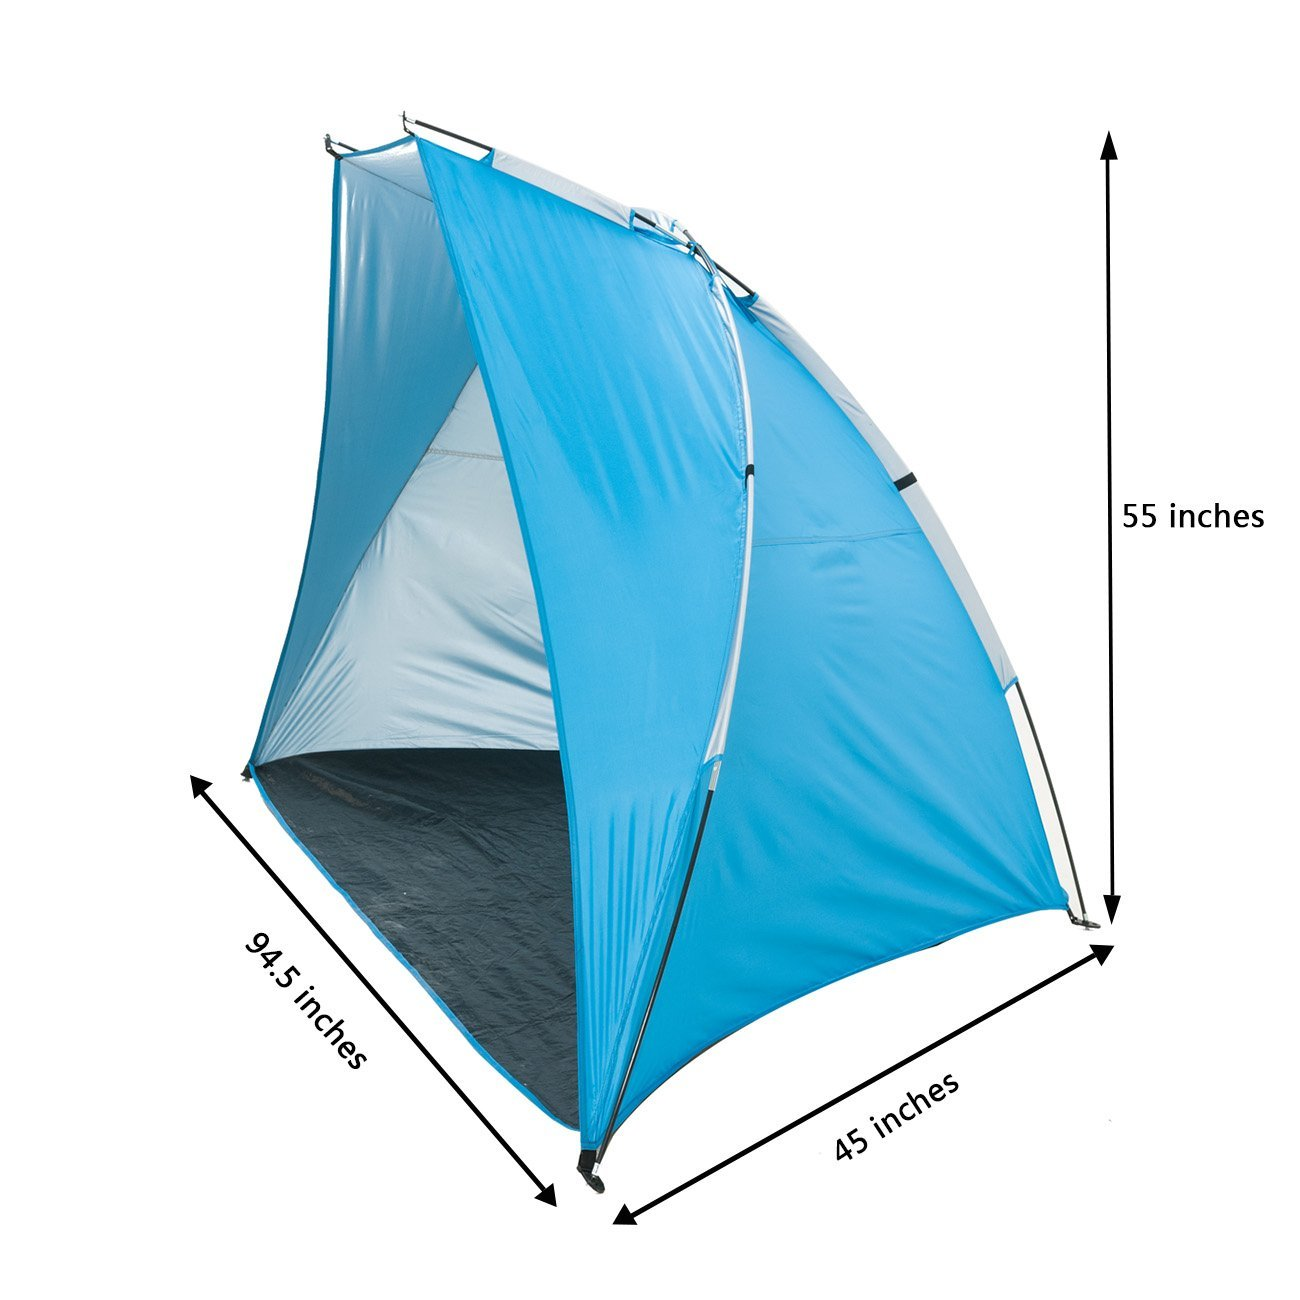 Icorer Extra Large Outdoor Portable Easyup Beach Cabana Tent Sun Shelter Sunshade 94 5 L X 47 2 W 55 H Unique Christmas Gifts